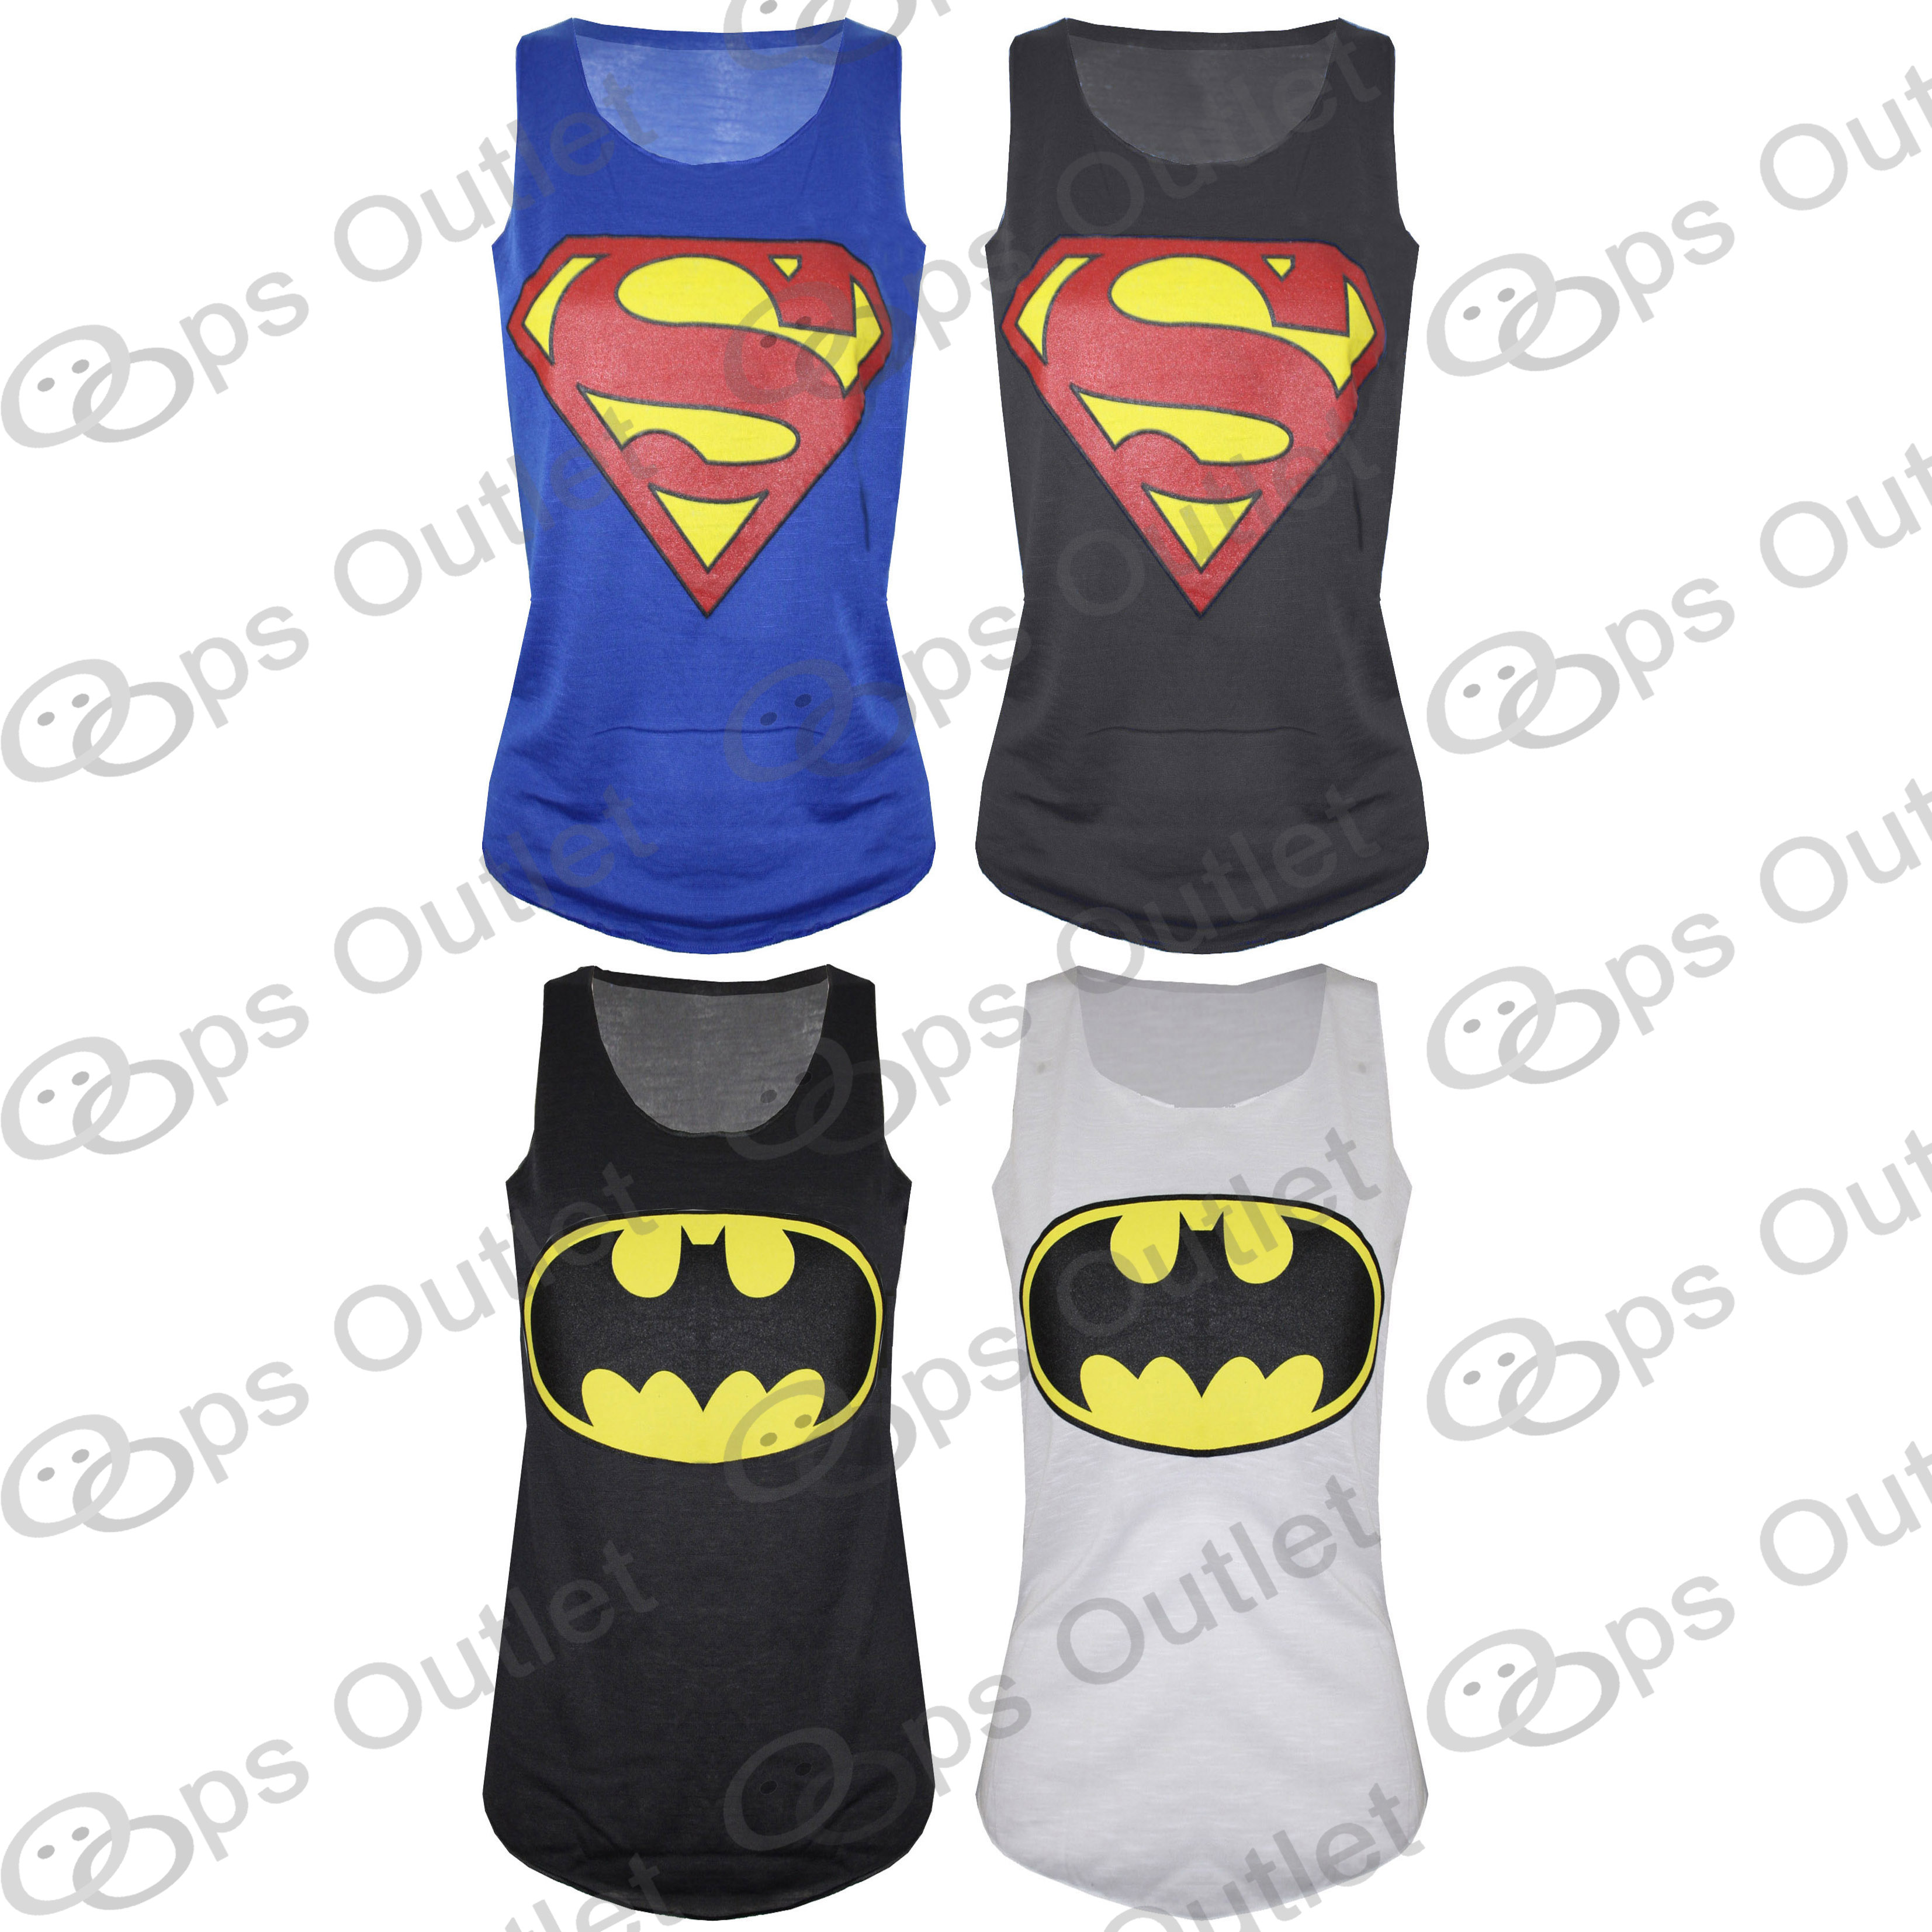 Womens Ladies Batman Superman Superwoman Girls Comic Hero Tank Top T Shirt Vest | eBay